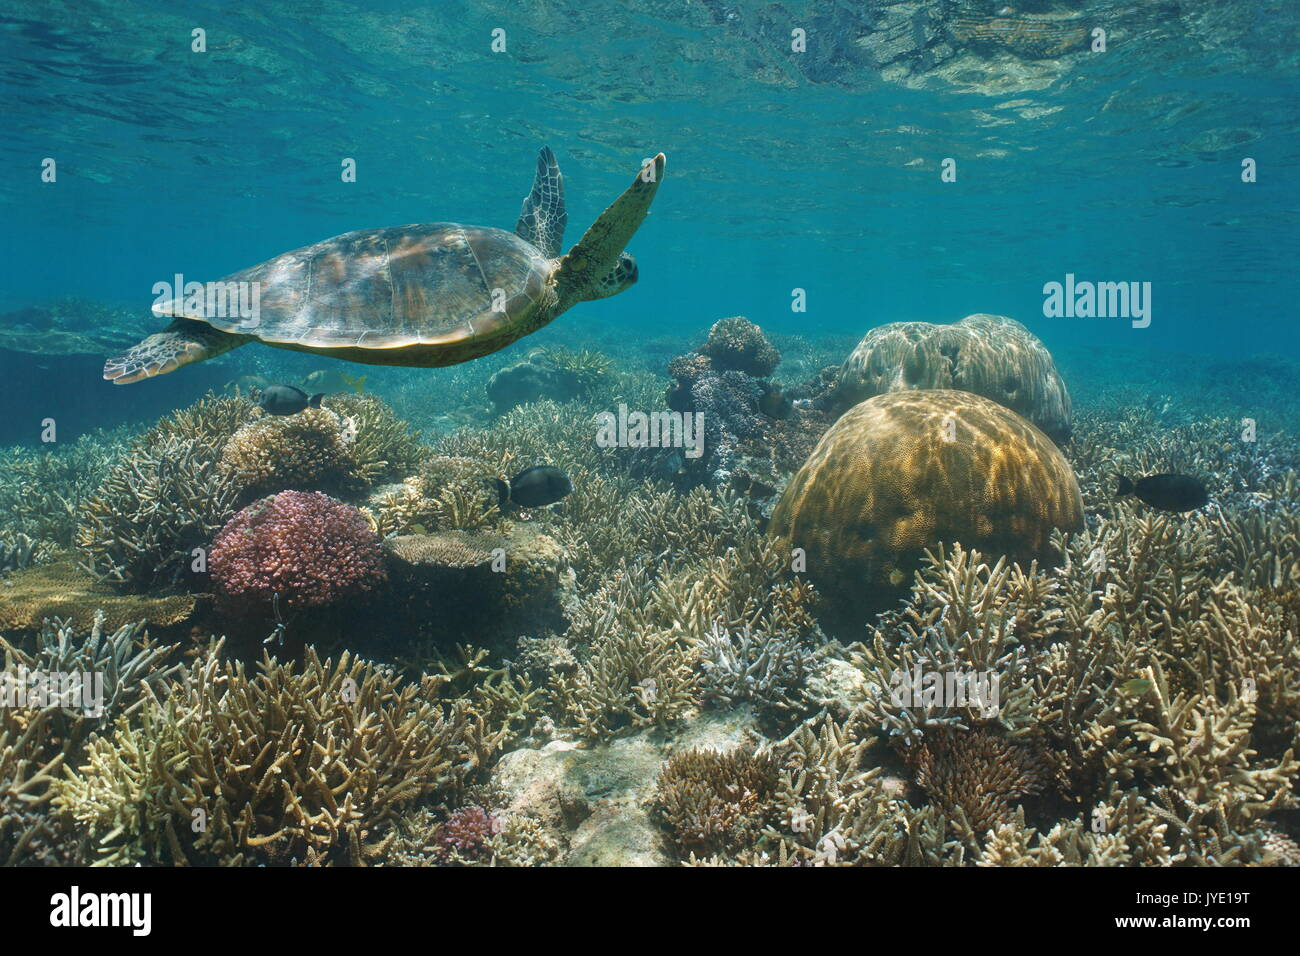 Beautiful coral reef with a green sea turtle underwater, south Pacific ocean, New Caledonia - Stock Image